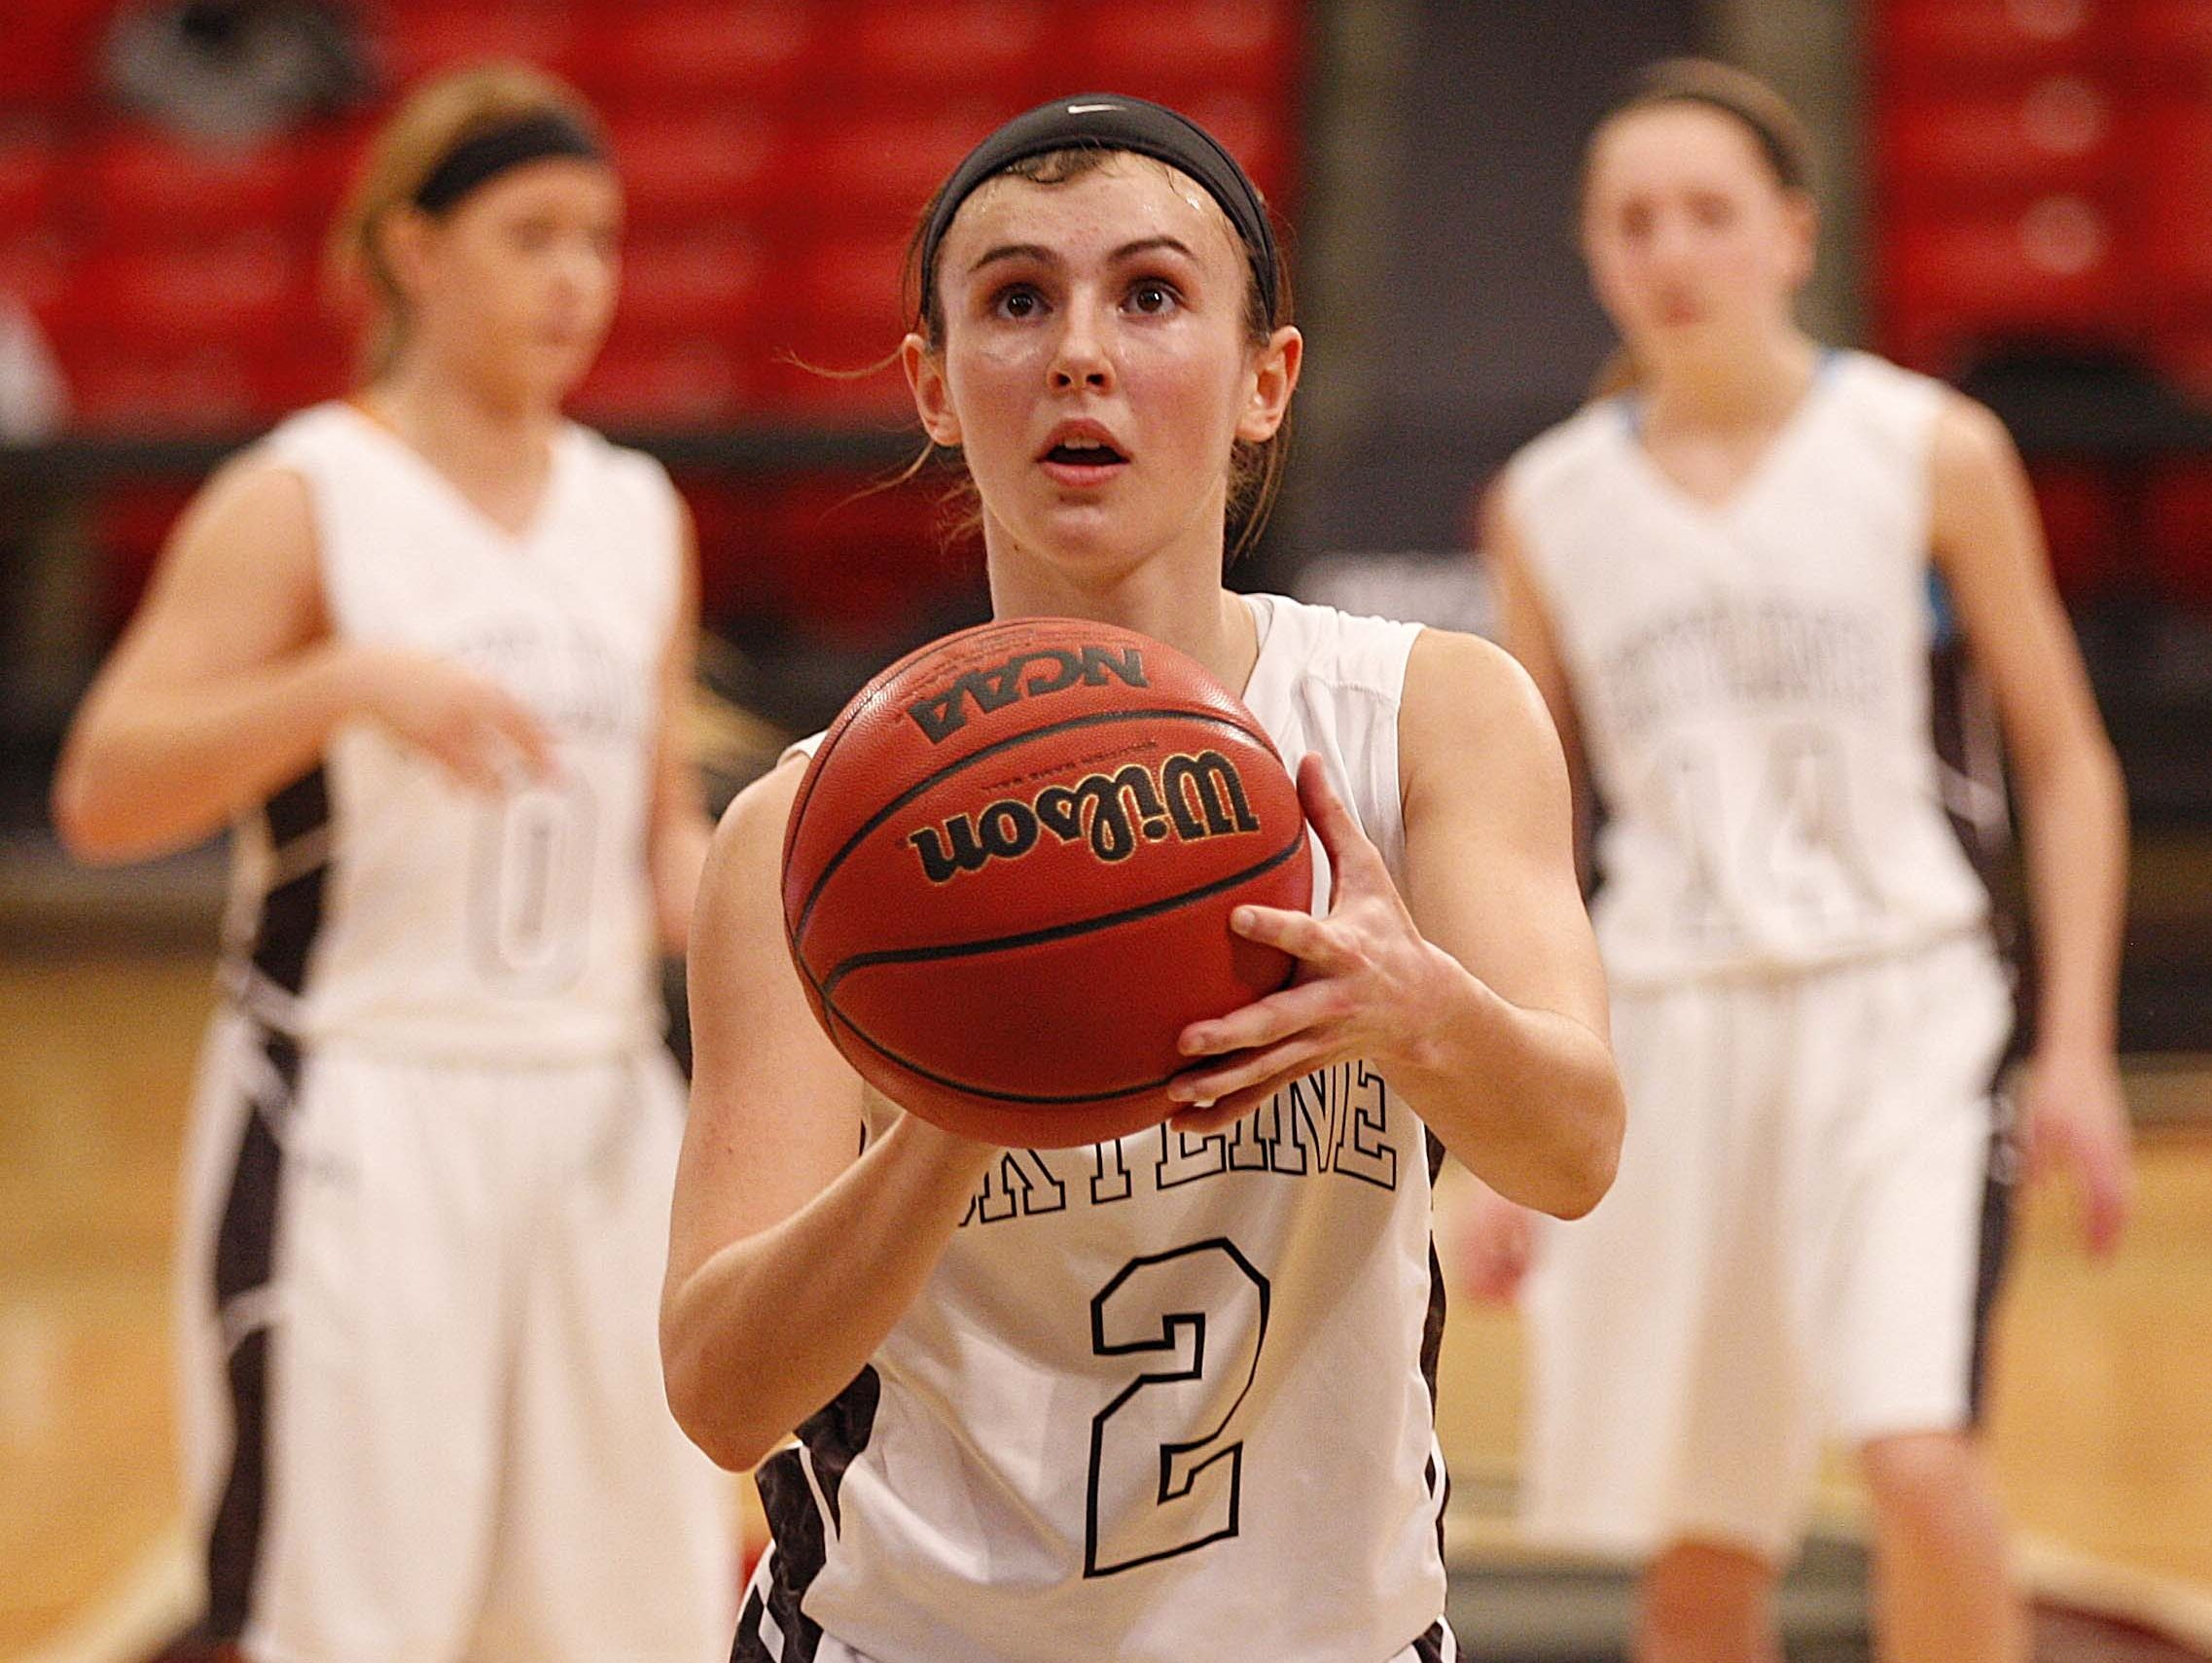 Kaylee DaMitz (center) and the Skyline Tigers hold the No. 3 seed in the White Division of the 2016 Pink and White Lady Classic, set to begin Dec. 27 at Drury University.